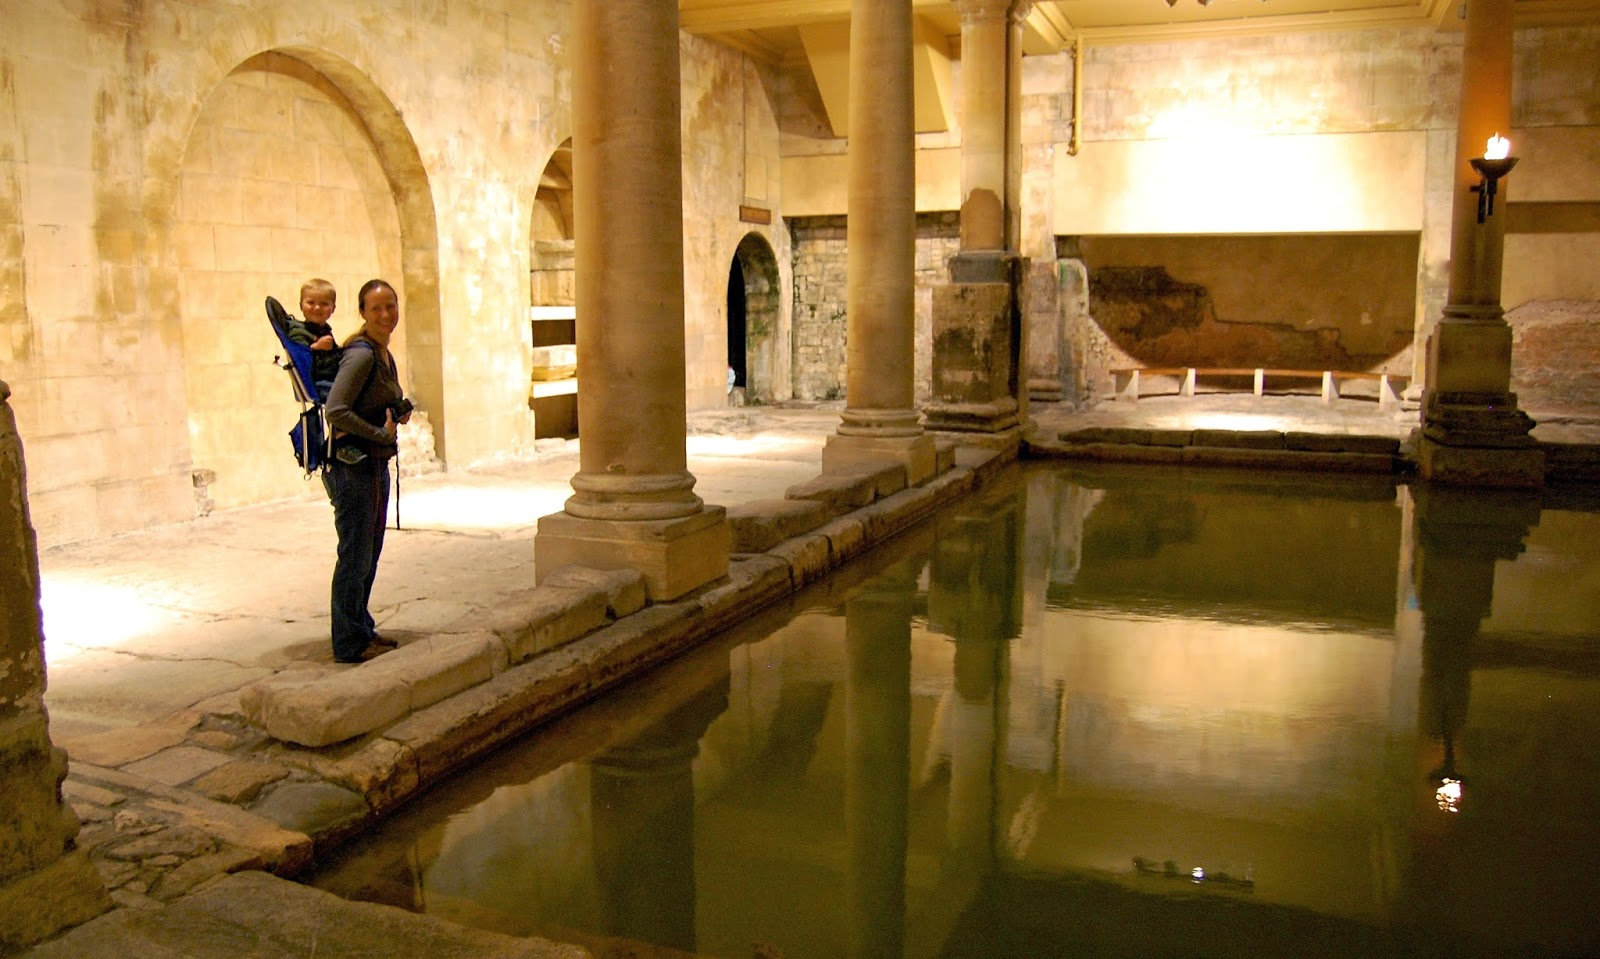 Wandering amidst the Roman baths in Bath, England